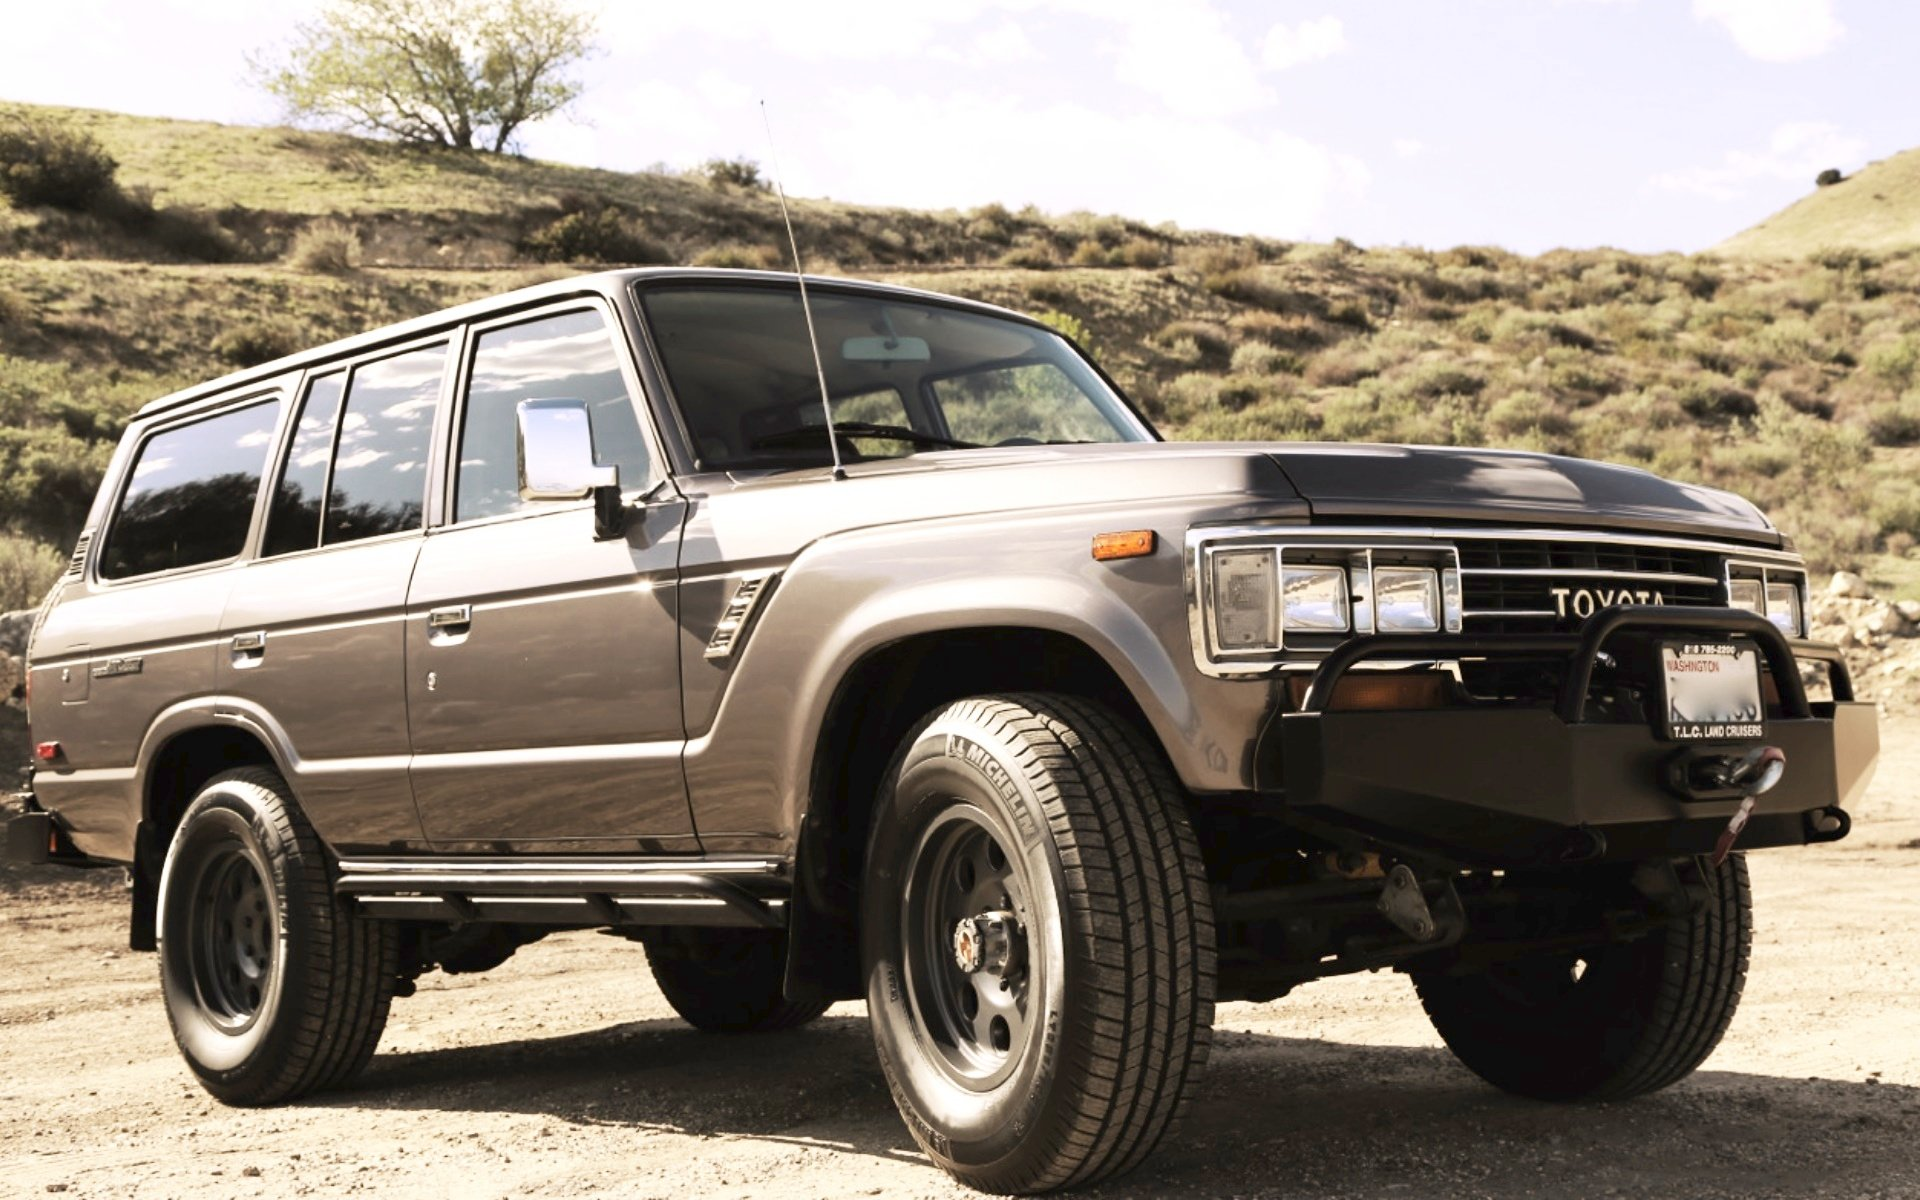 Why Chalbi Desert is Best Explored in a Land Cruiser